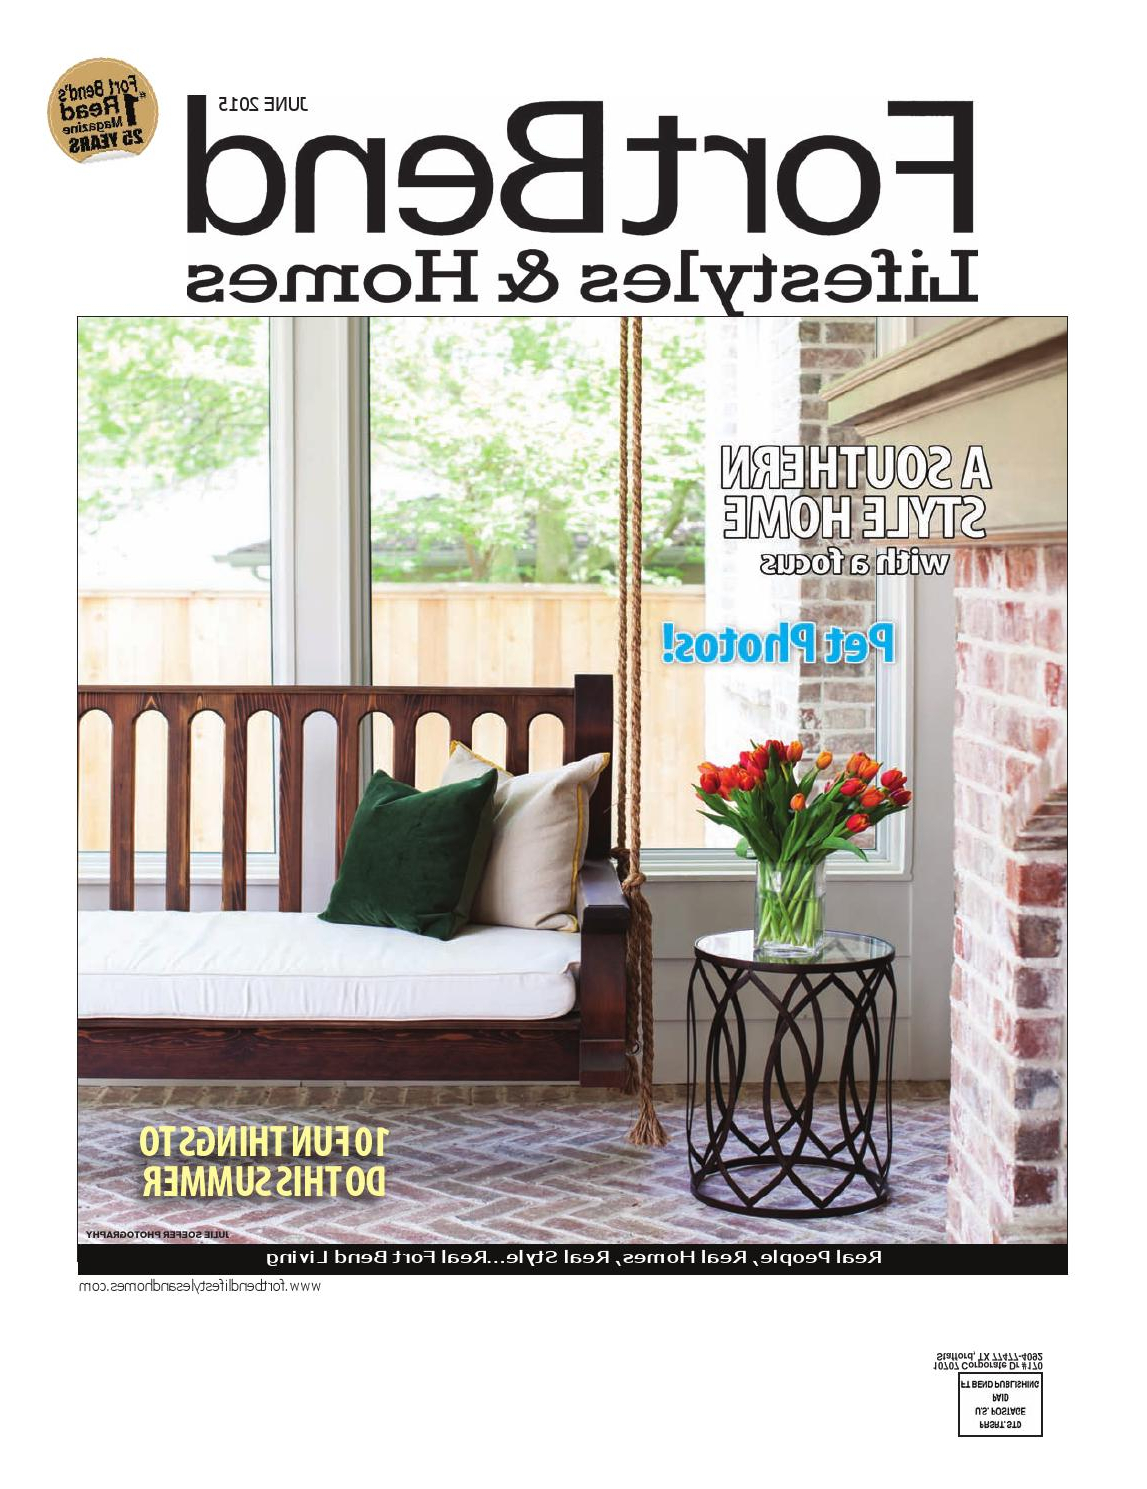 Well Known Marcus Oyster 6 Piece Sectionals With Power Headrest And Usb In Fort Bend Lifestyles & Homes June 2015lifestyles & Homes (View 20 of 20)